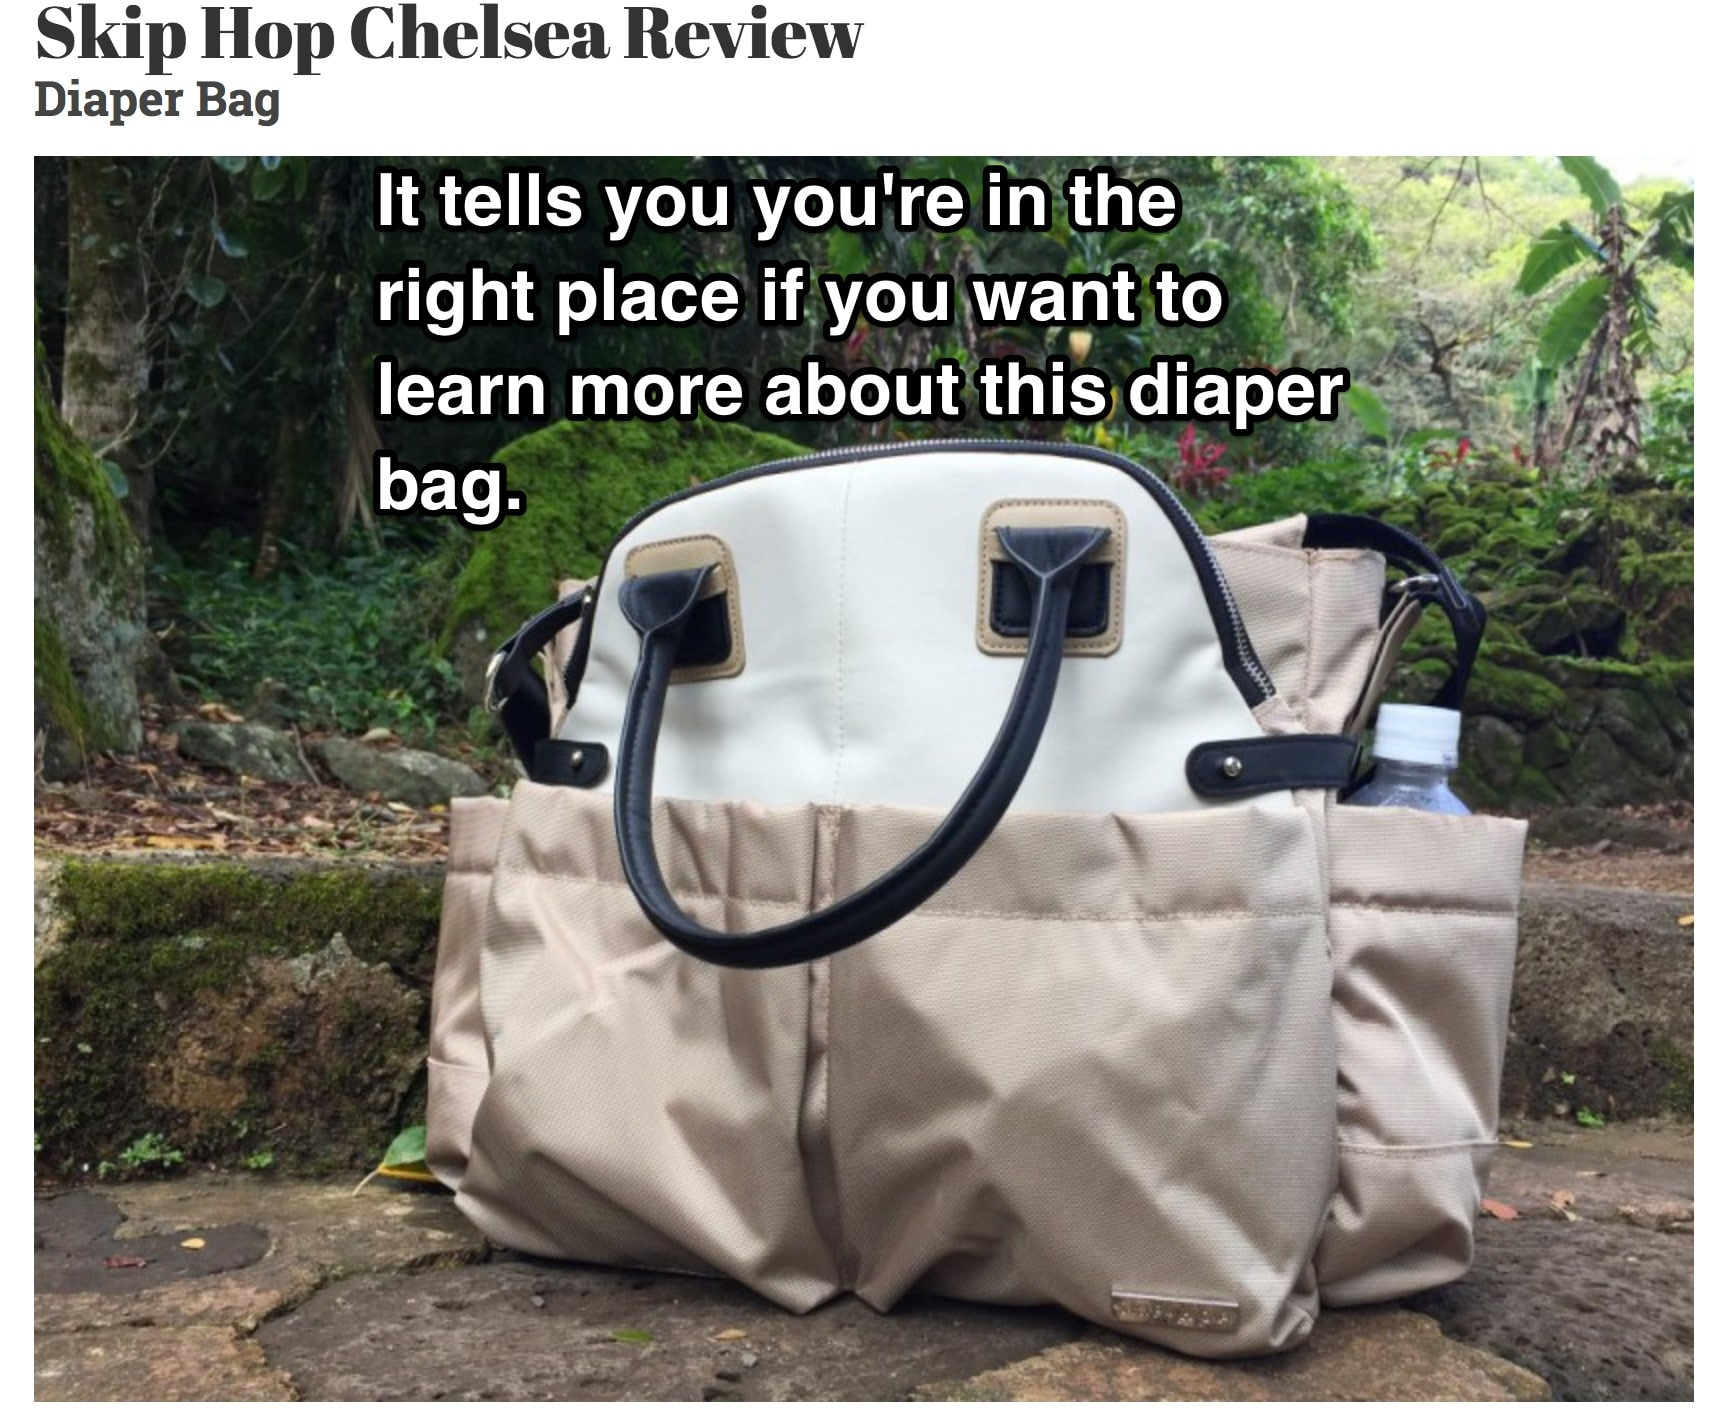 babygearlab-high-quality-headline-image-diaper-bag